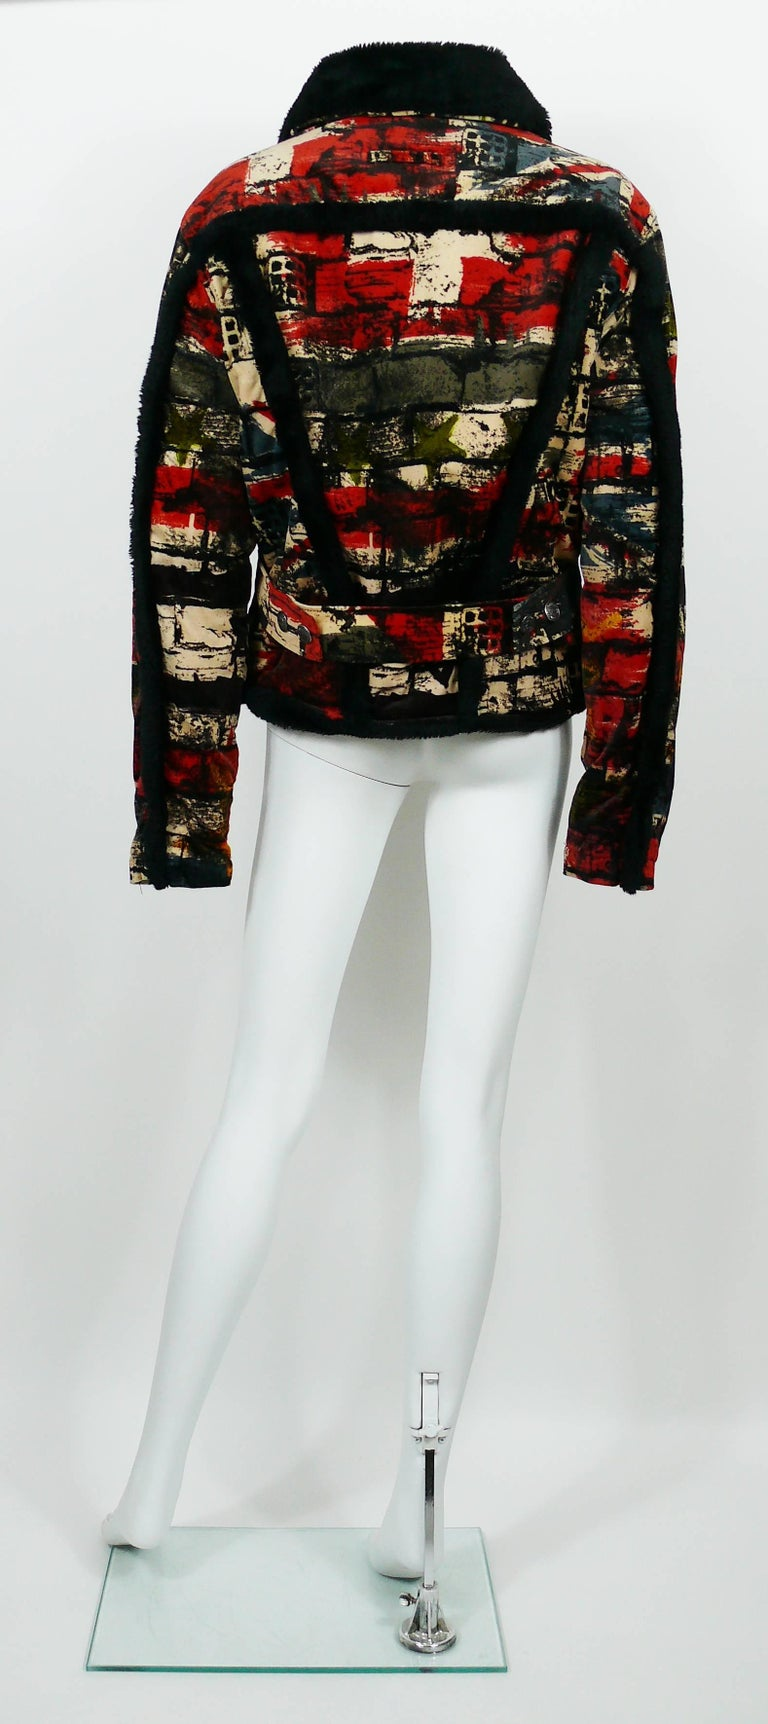 Jean Paul Gaultier Vintage Wall and Flags Print Jacket In Good Condition For Sale In French Riviera, Cote d'Azur